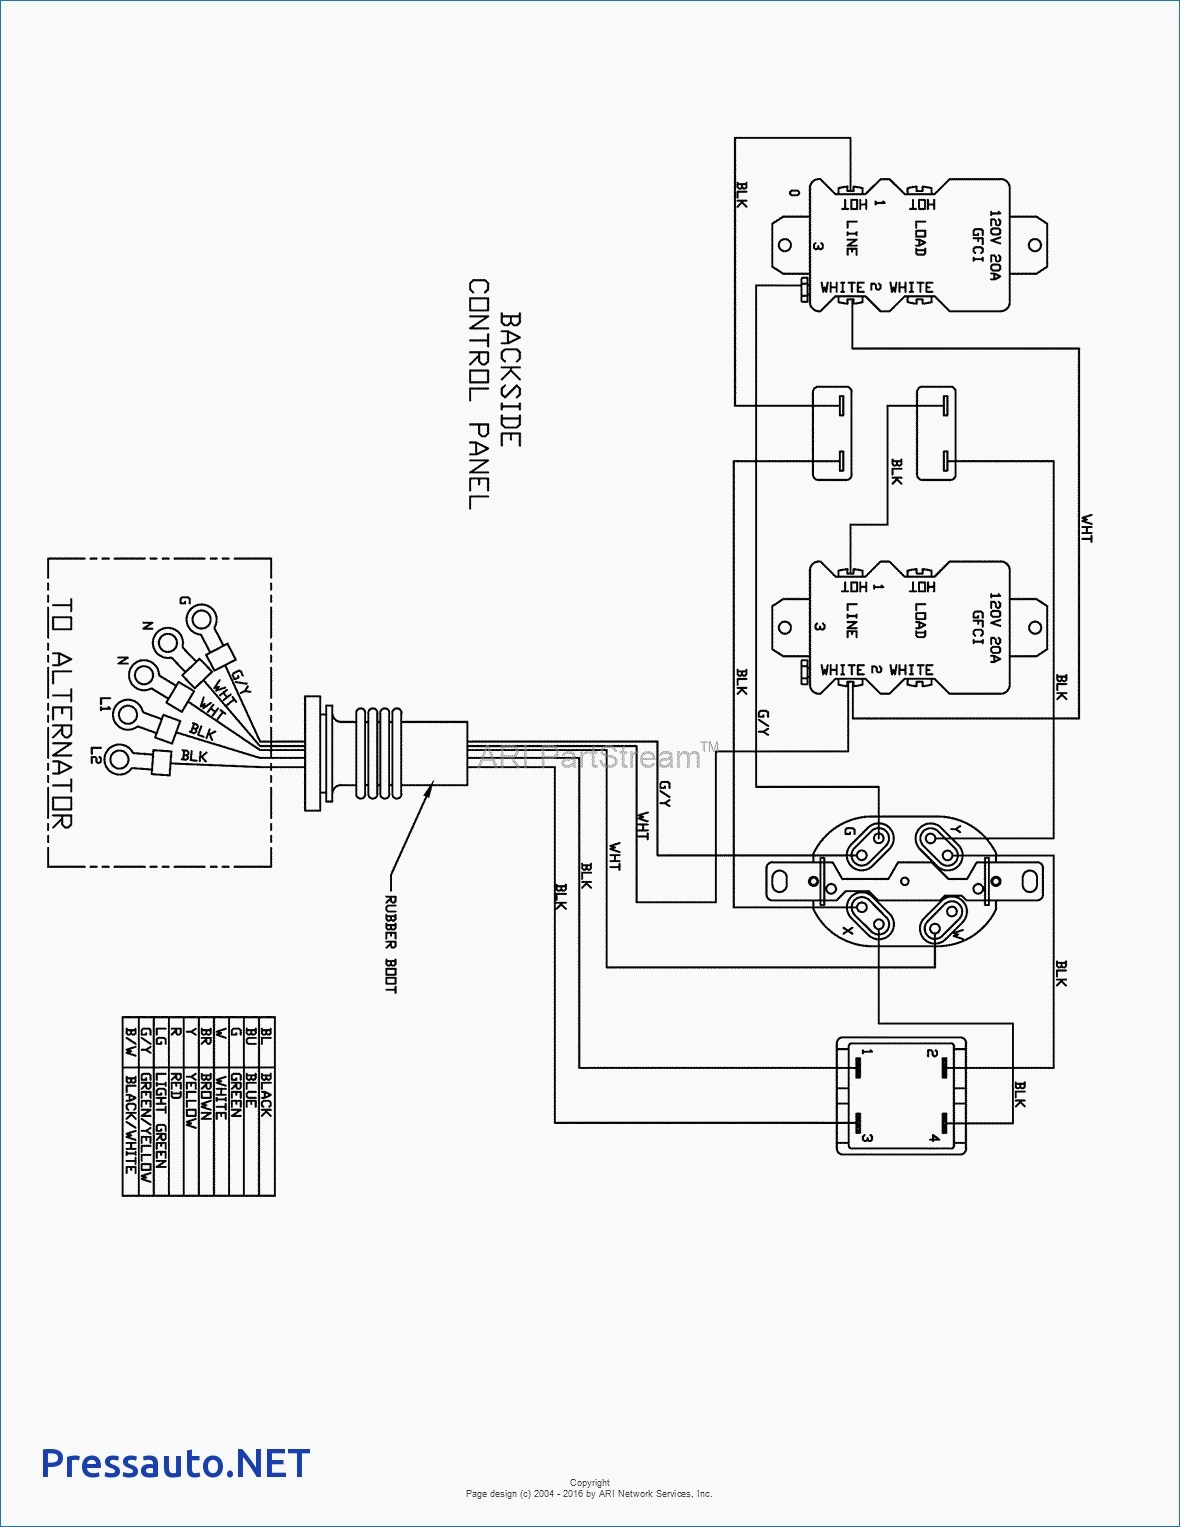 Ignition Predator 420Cc Engine Wiring Diagram from wholefoodsonabudget.com